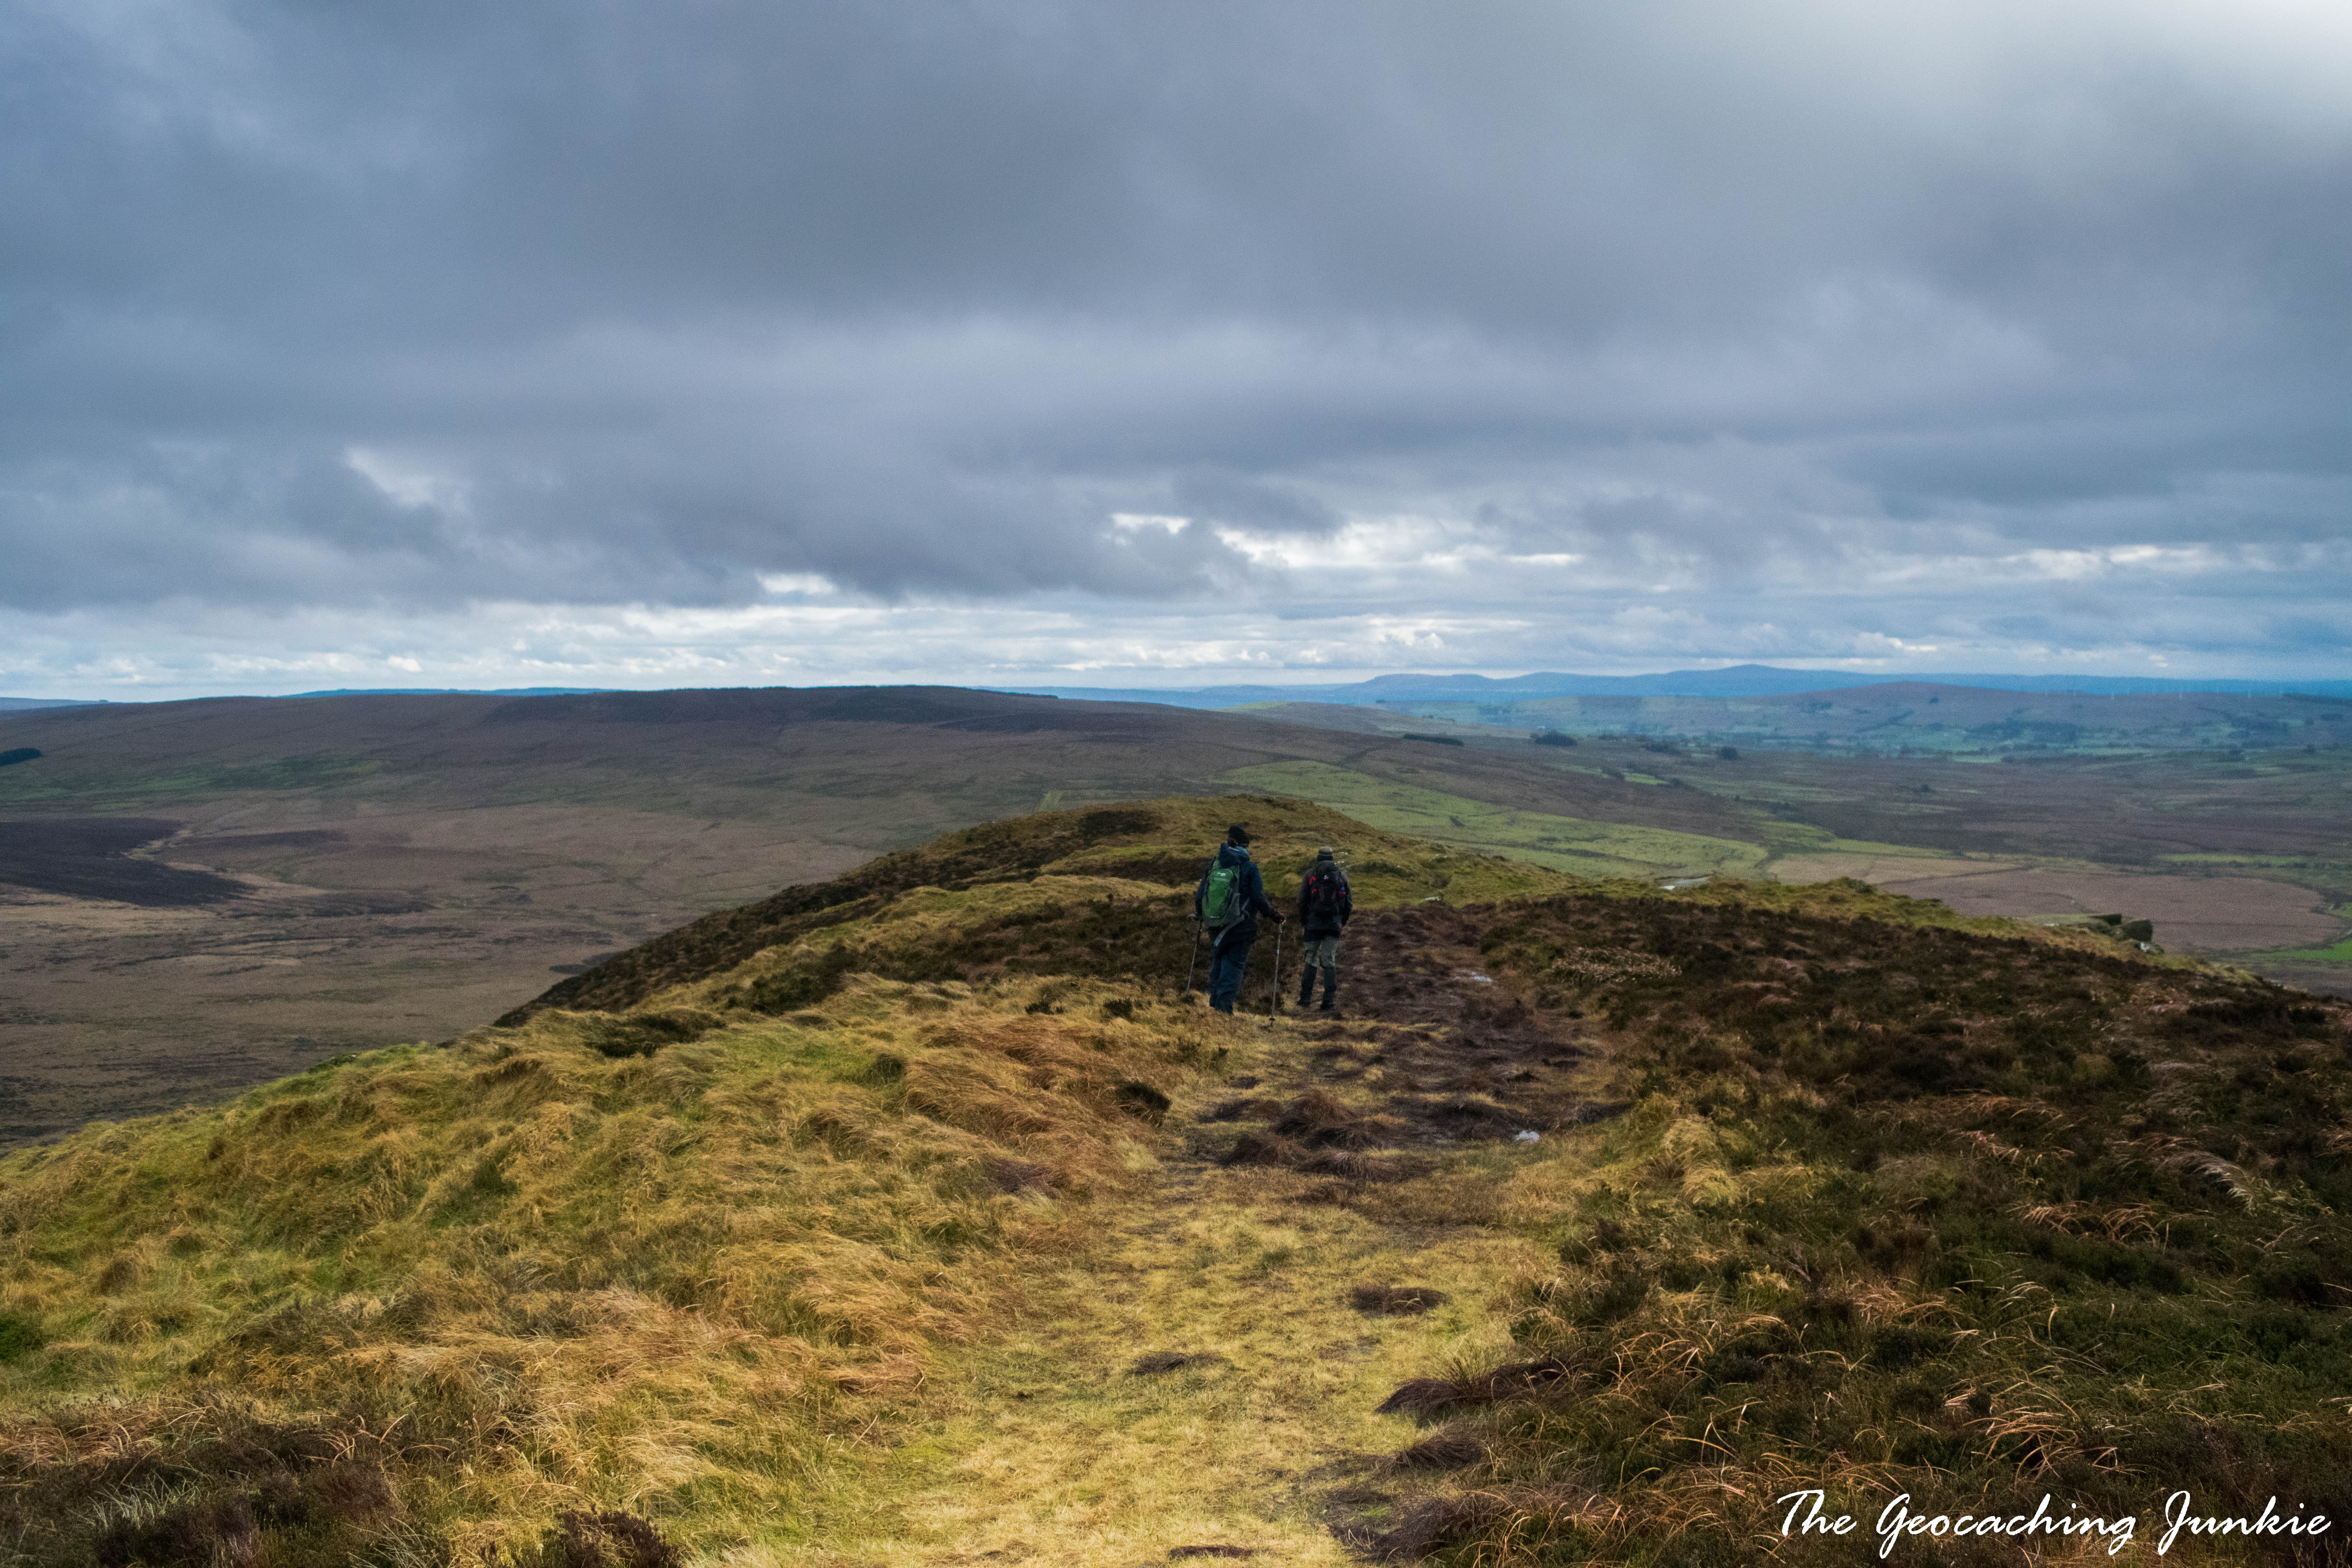 The Geocaching Junkie - February Hike: Slemish - St Patrick's Mountain